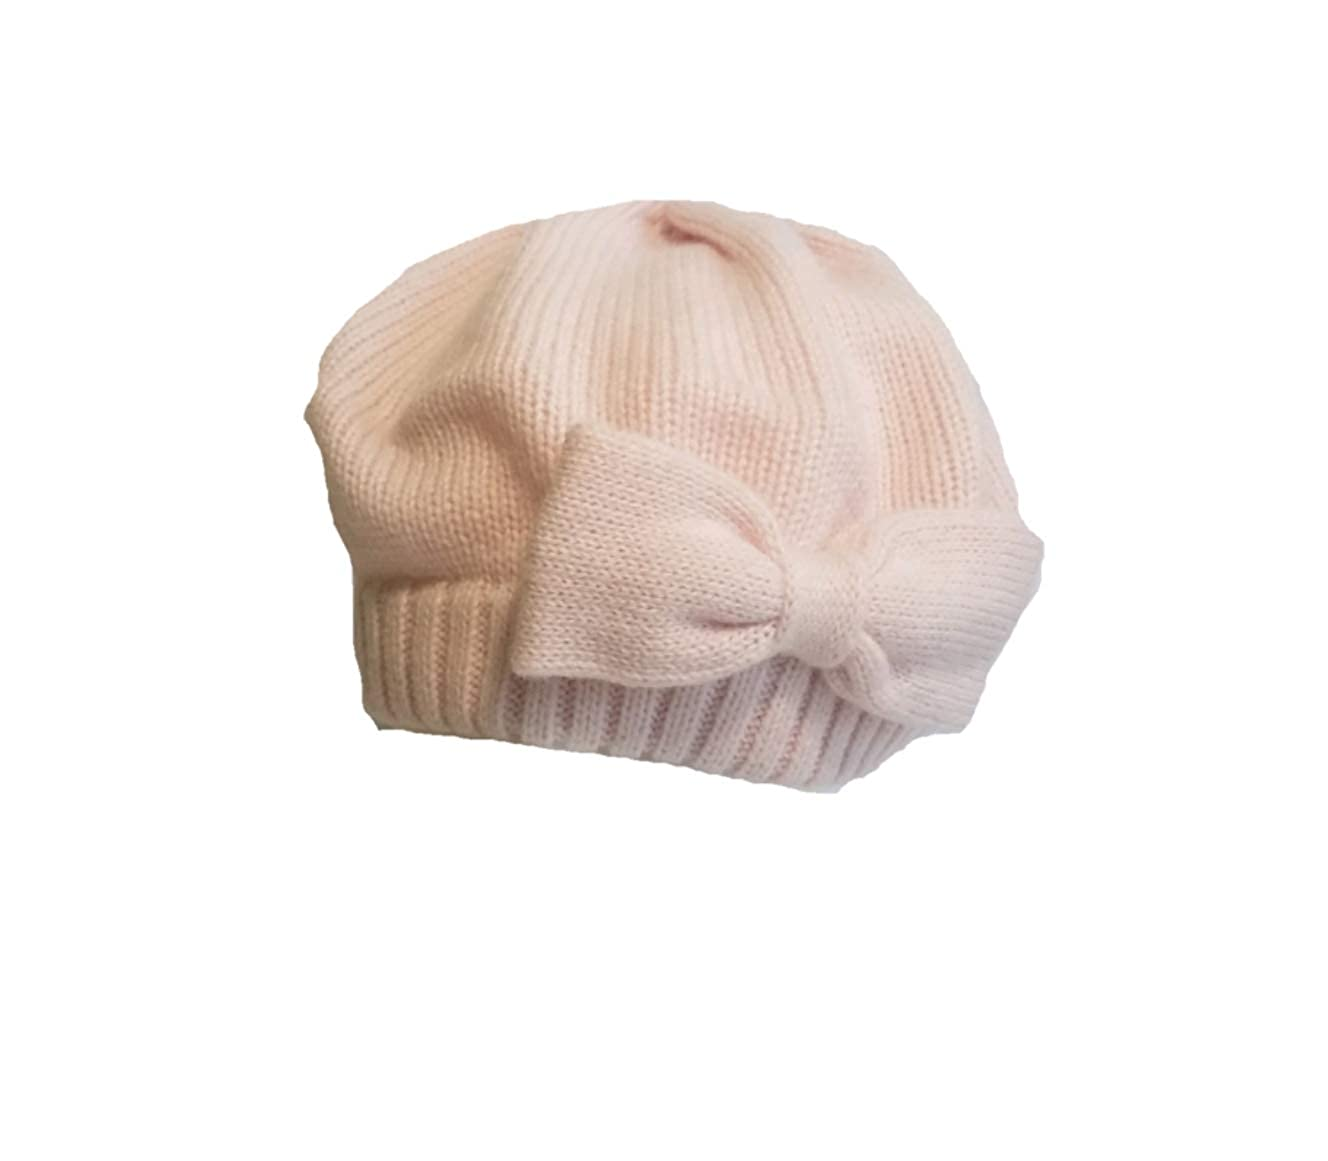 Kate Spade Gathered Bow Beret, Pastry Pink